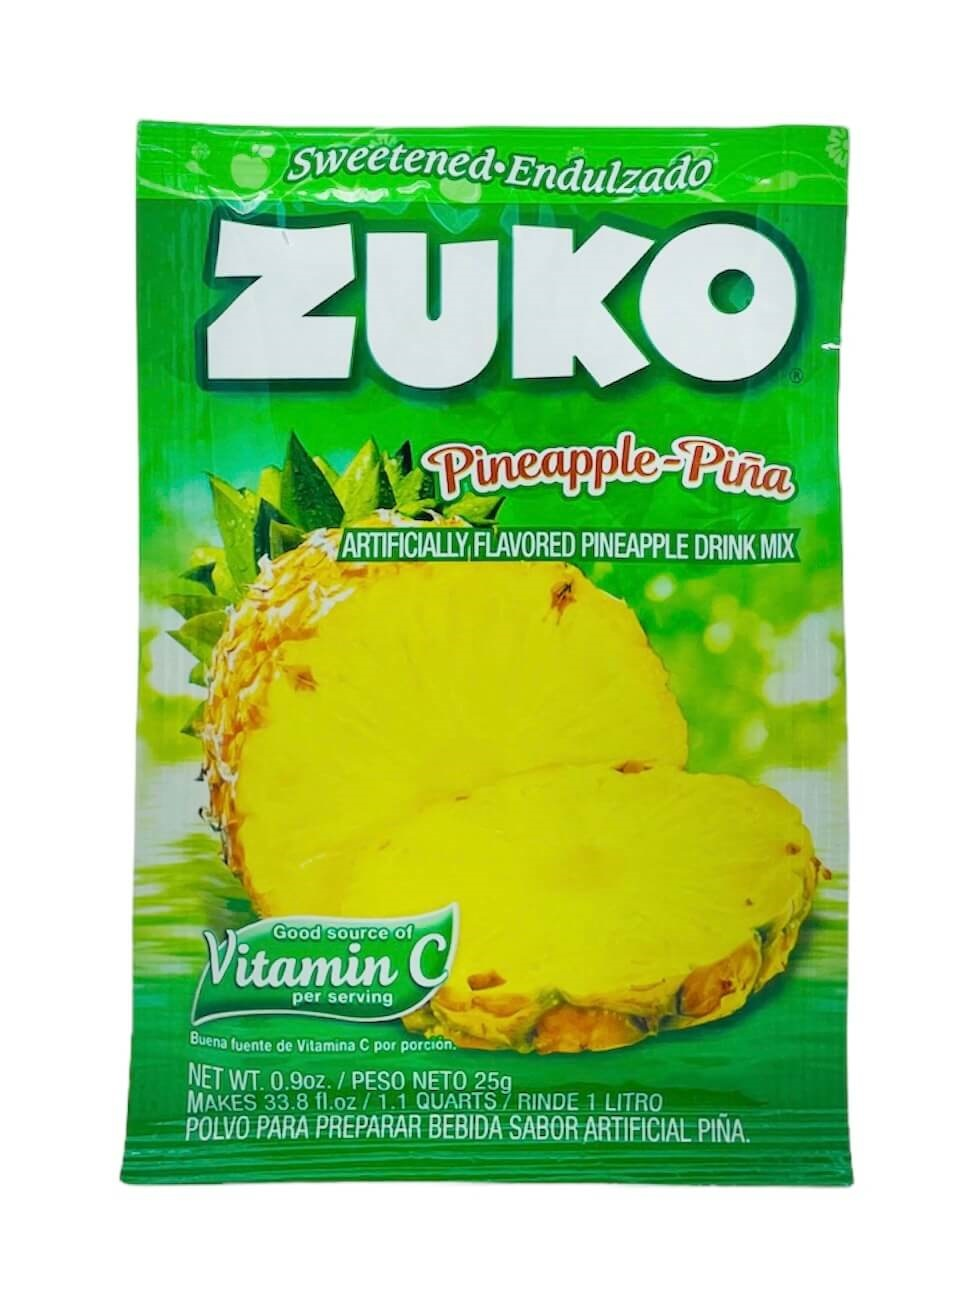 Picture of Zuko Pineapple Flavor Drink Mix (1 Liter / 0.9 oz) 3 Pack - Item No. 30108-00013